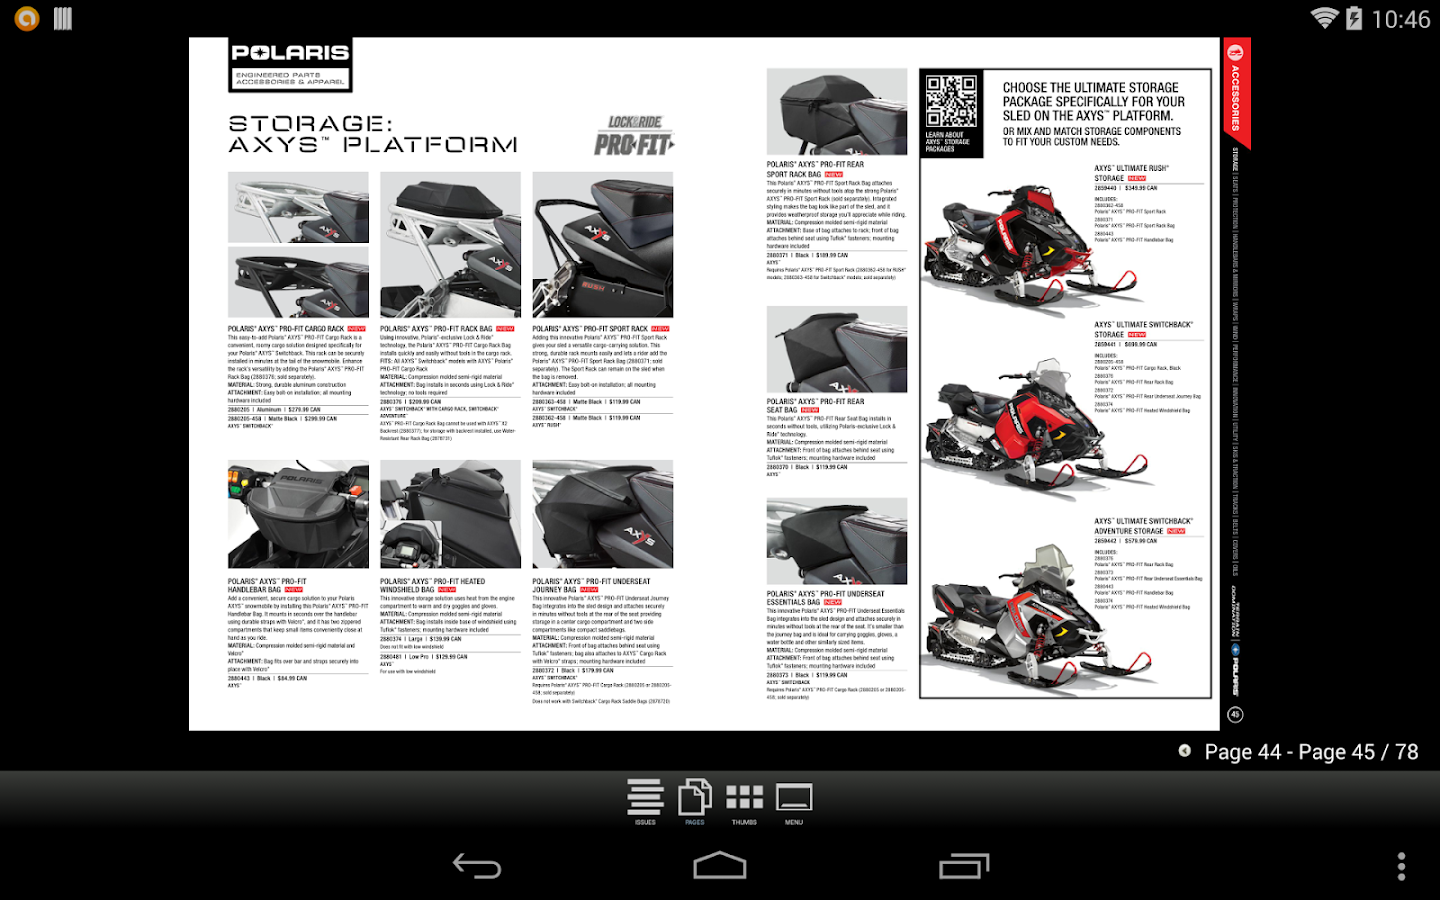 Polaris Snow Catalogs CAN - screenshot